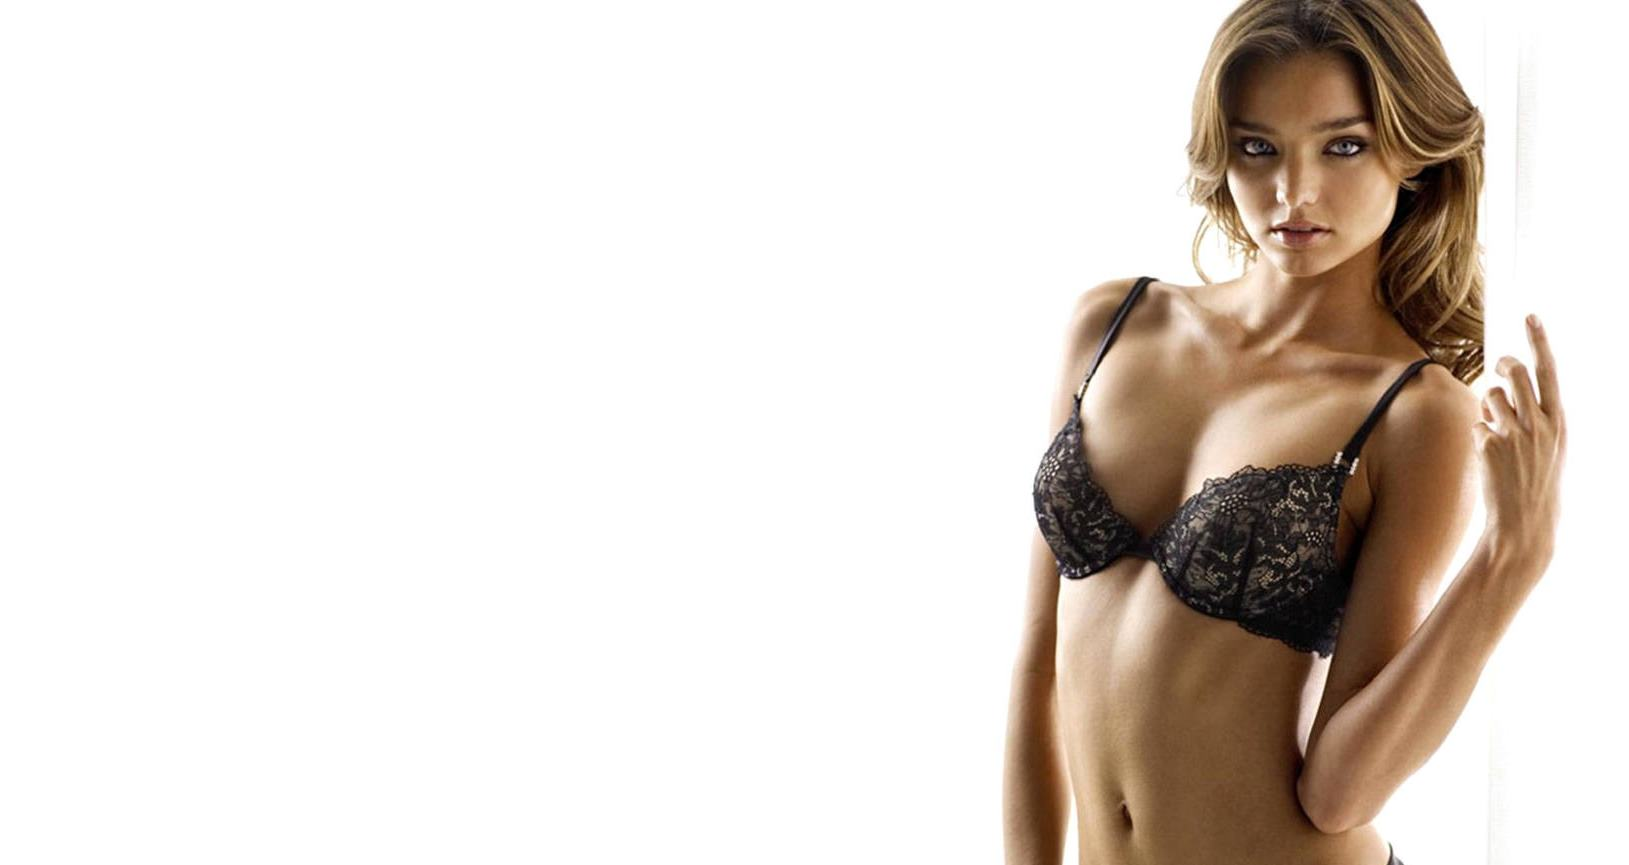 99 Of The Greatest Sexy Photos Ever Seen